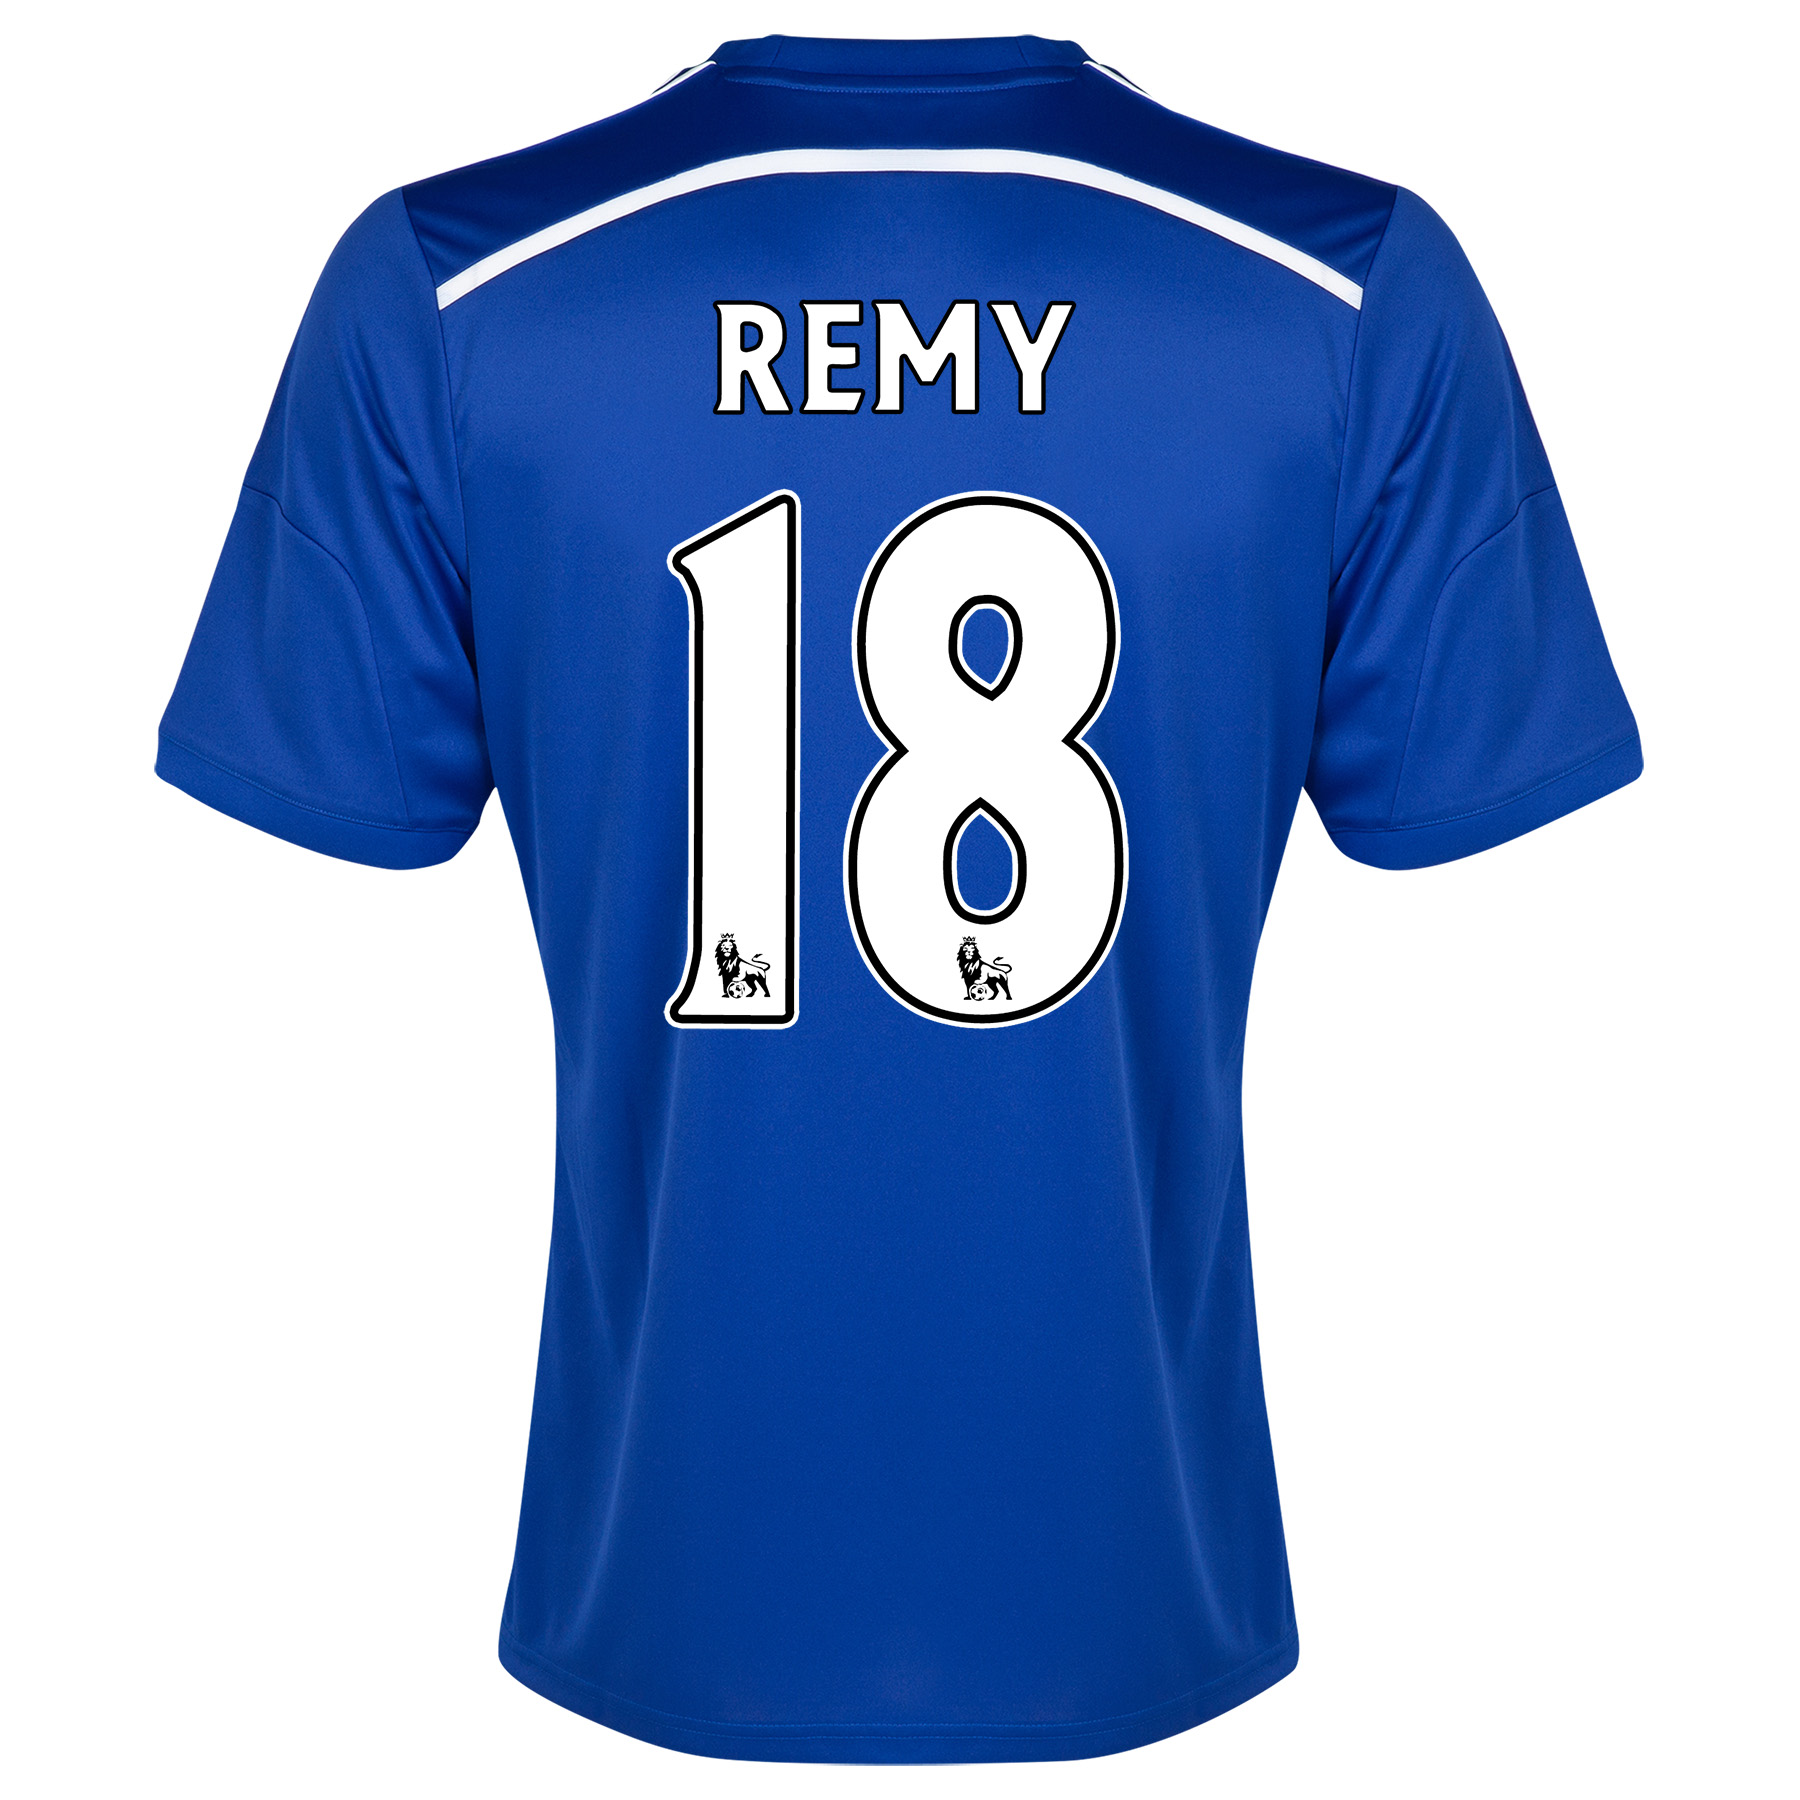 Chelsea Home Shirt 2014/15 with Remy 18 printing